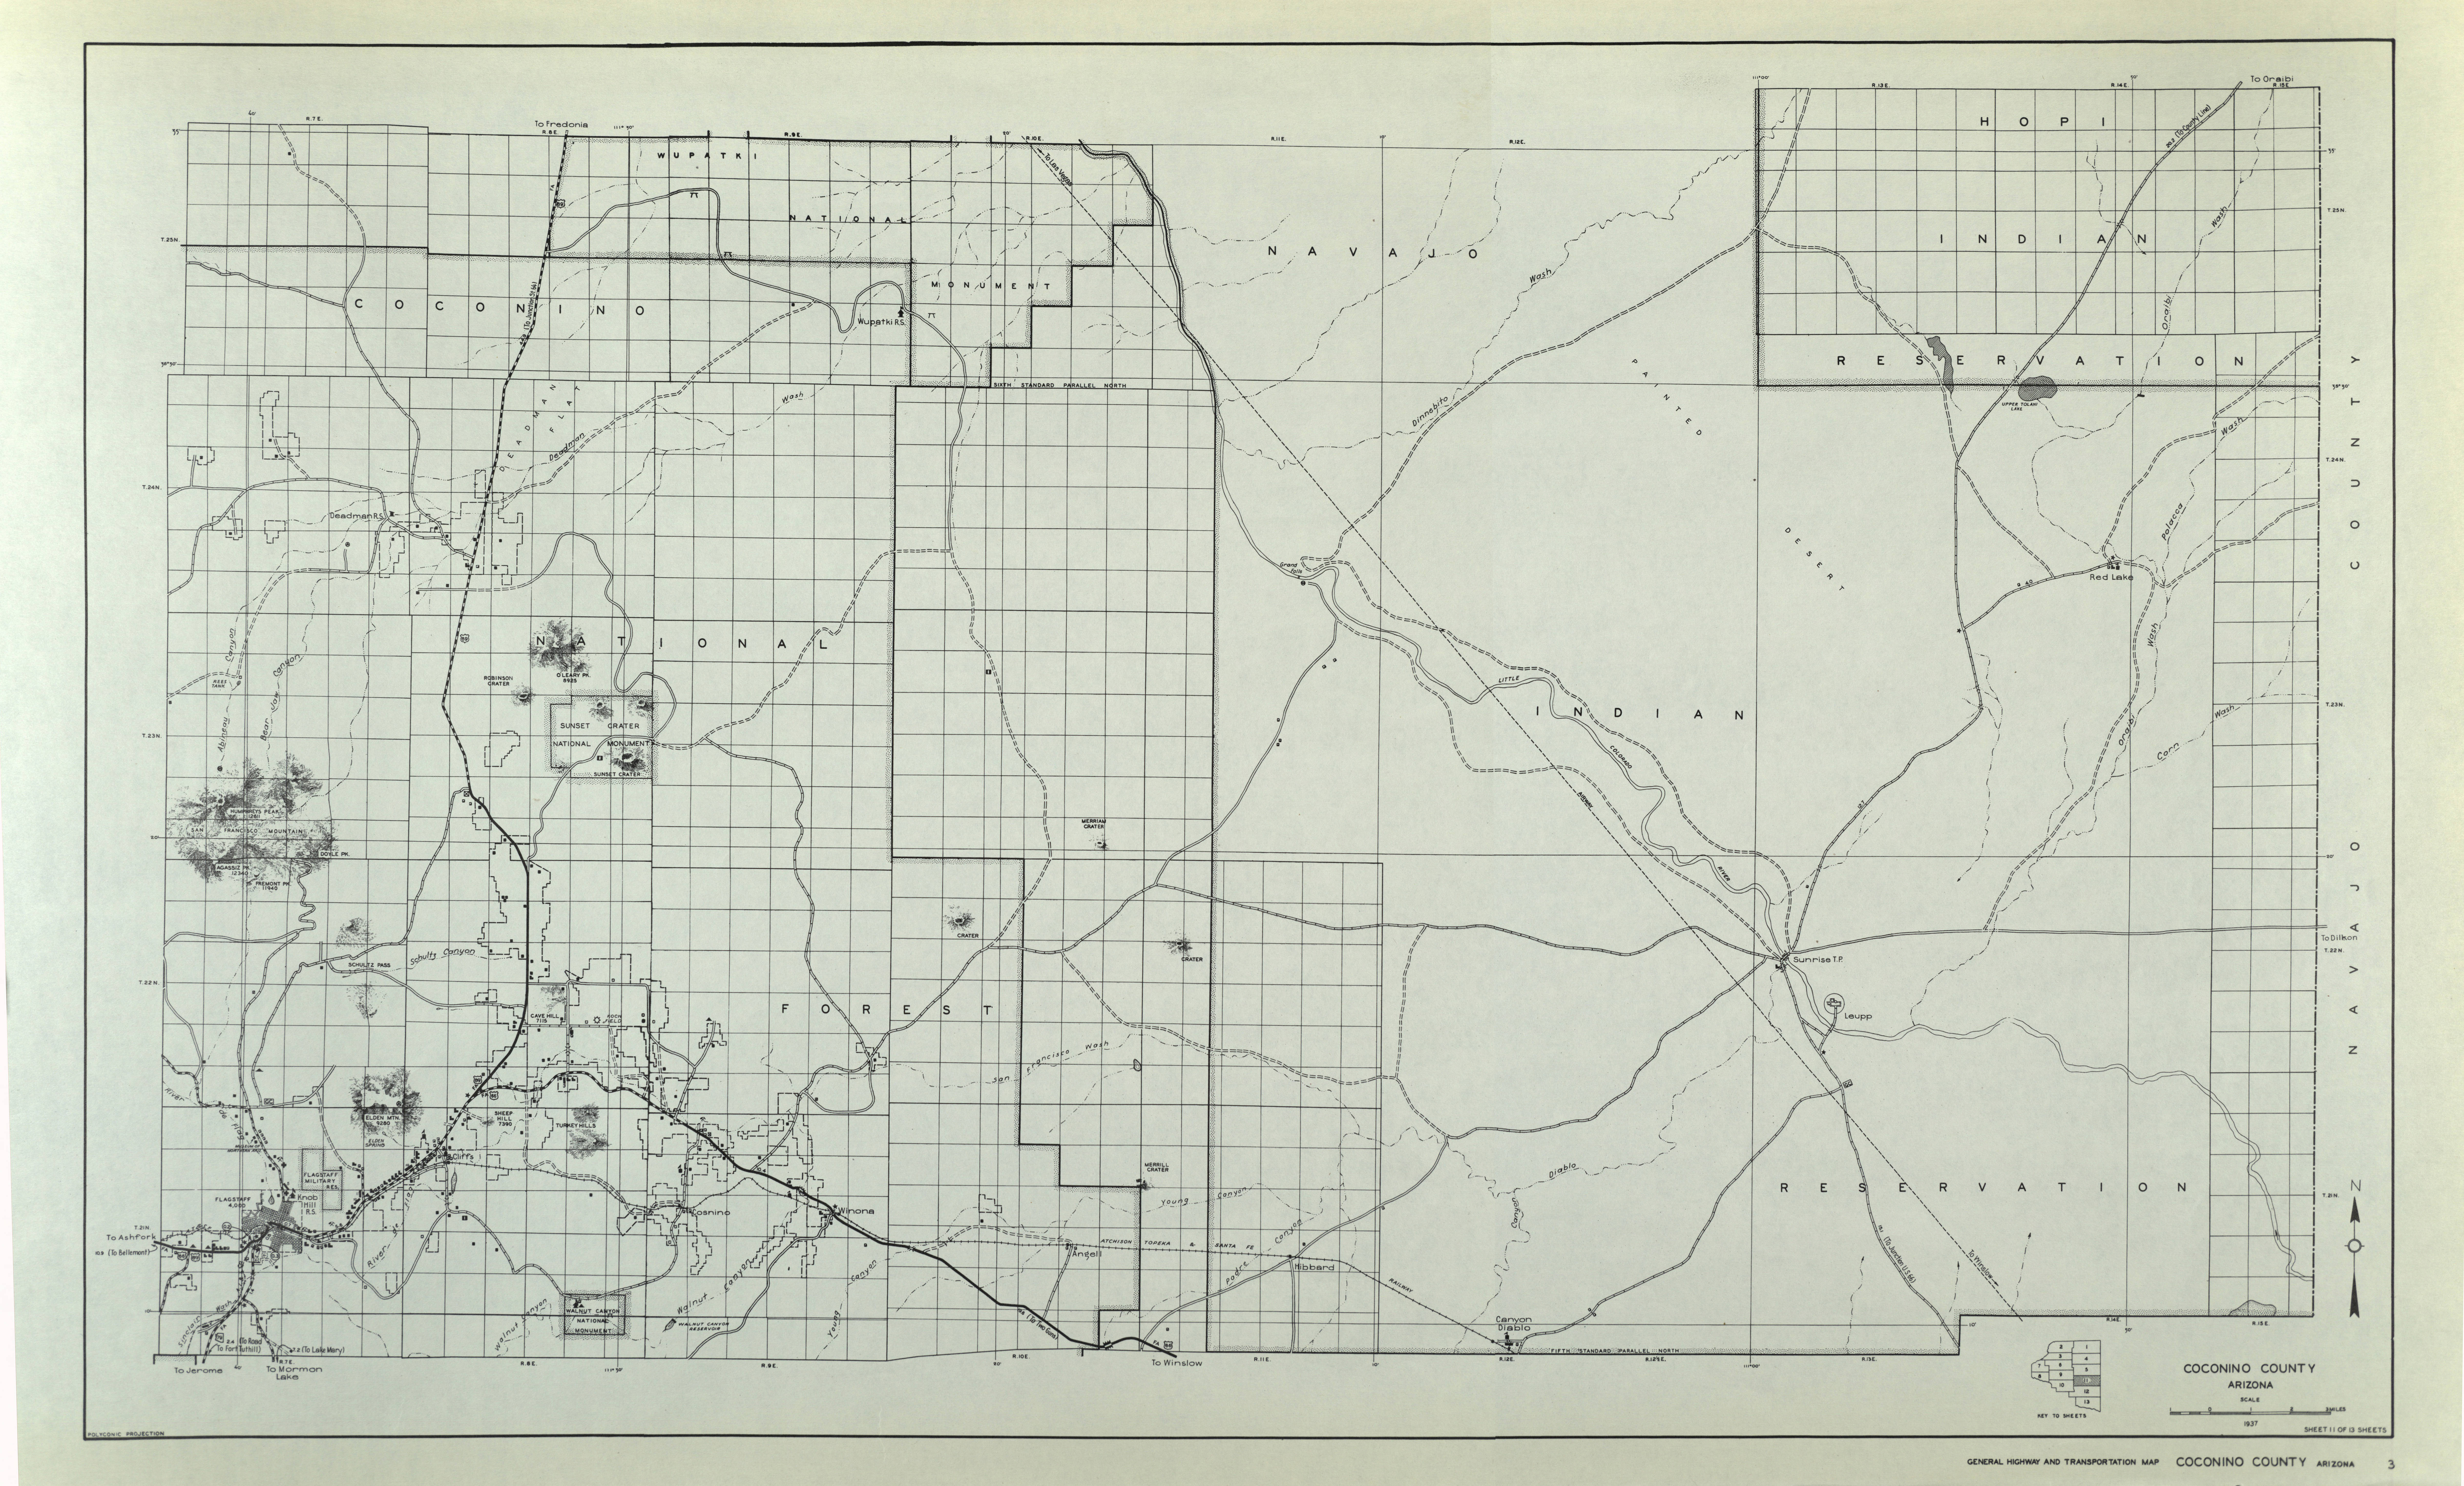 1937 Arizona State Highway Maps for 66 on contra costa county road map, merrick county road map, prescott national forest road map, cottonwood county road map, creek county road map, kiowa county road map, pawnee county road map, clayton county road map, churchill county road map, san luis obispo county road map, san joaquin county road map, knox county road map, alameda county road map, covington county road map, kingman road map, mohave county road map, adams county road map, yavapai plat maps, boise county road map, briggs road map,